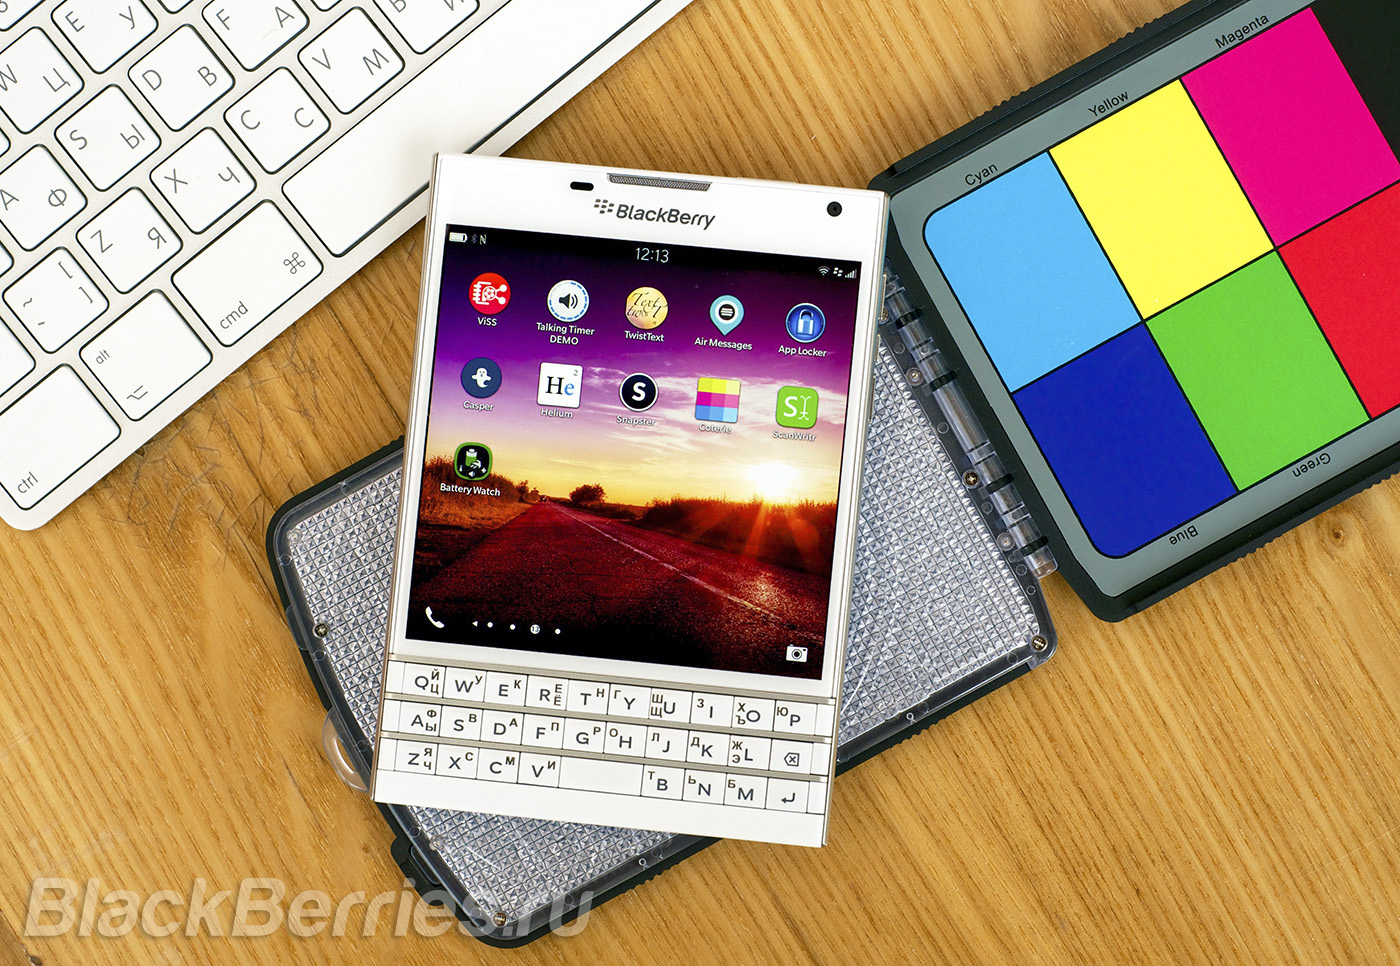 BlackBerry-Passport-Apps-18-07-09